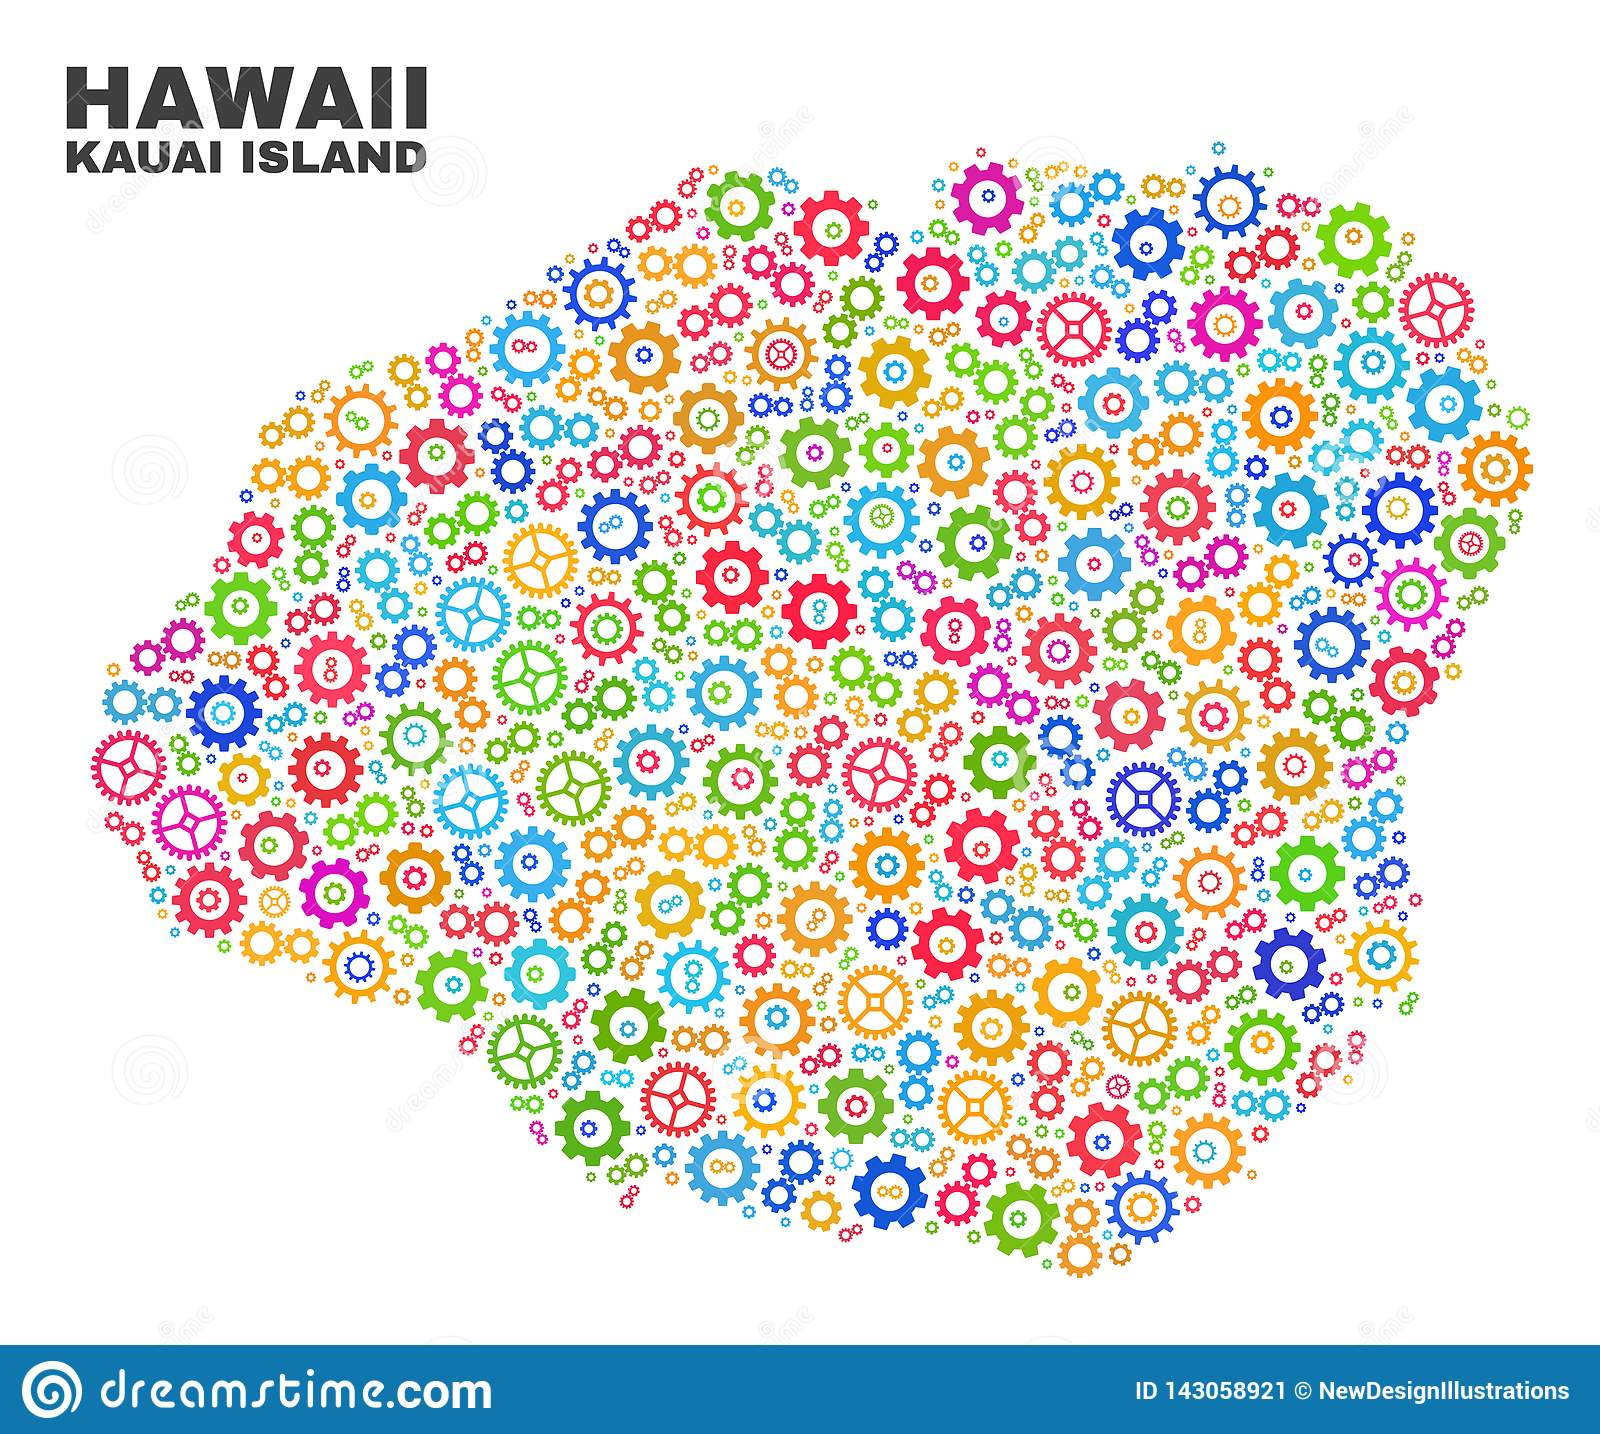 Mosaic Kauai Island Map Of Cogwheel Items Stock Vector ... on molokai island map, corpus christi island map, kauai hawaii, kihei island map, kauai places to visit, rome island map, new orleans island map, oahu map, kilauea map, lanai island map, mississippi island map, oregon island map, connecticut island map, ohio island map, lihue island map, maui island map, virginia island map, myrtle beach island map, san jose island map, hawaii map,